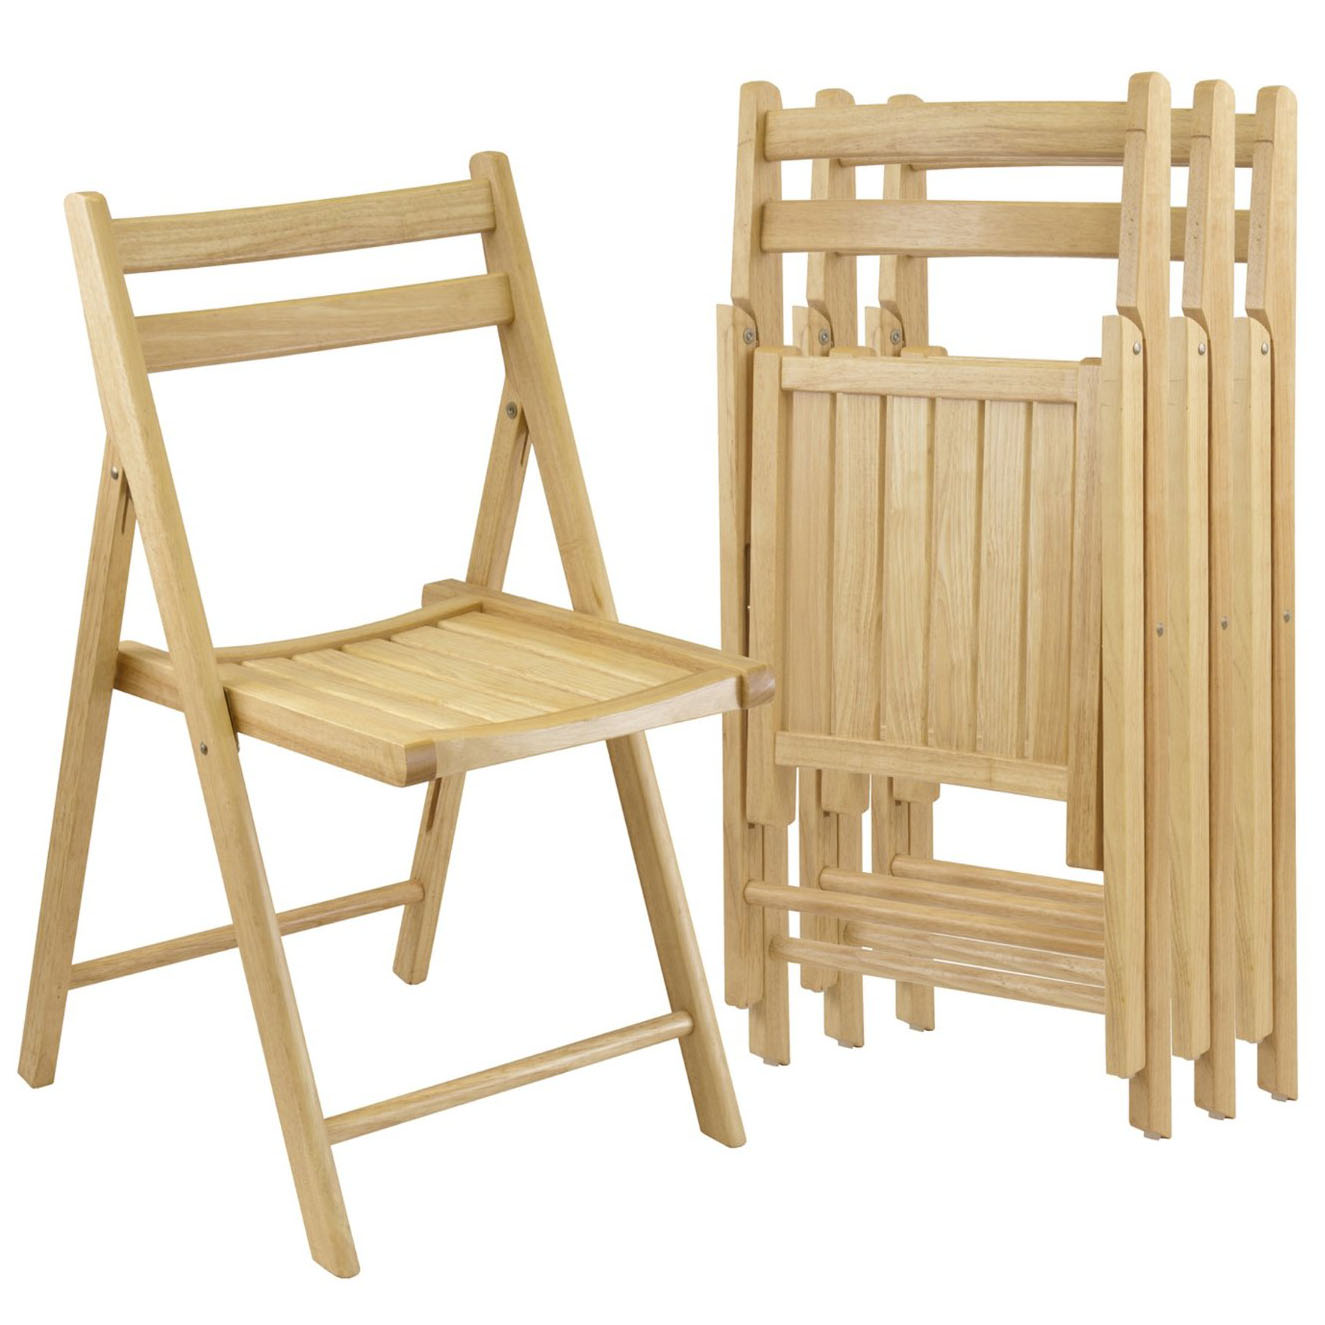 Wooden Folding Chairs Home Decorator Shop : Wooden Folding Chairs from www.homedecoratorshop.com size 1325 x 1325 jpeg 167kB